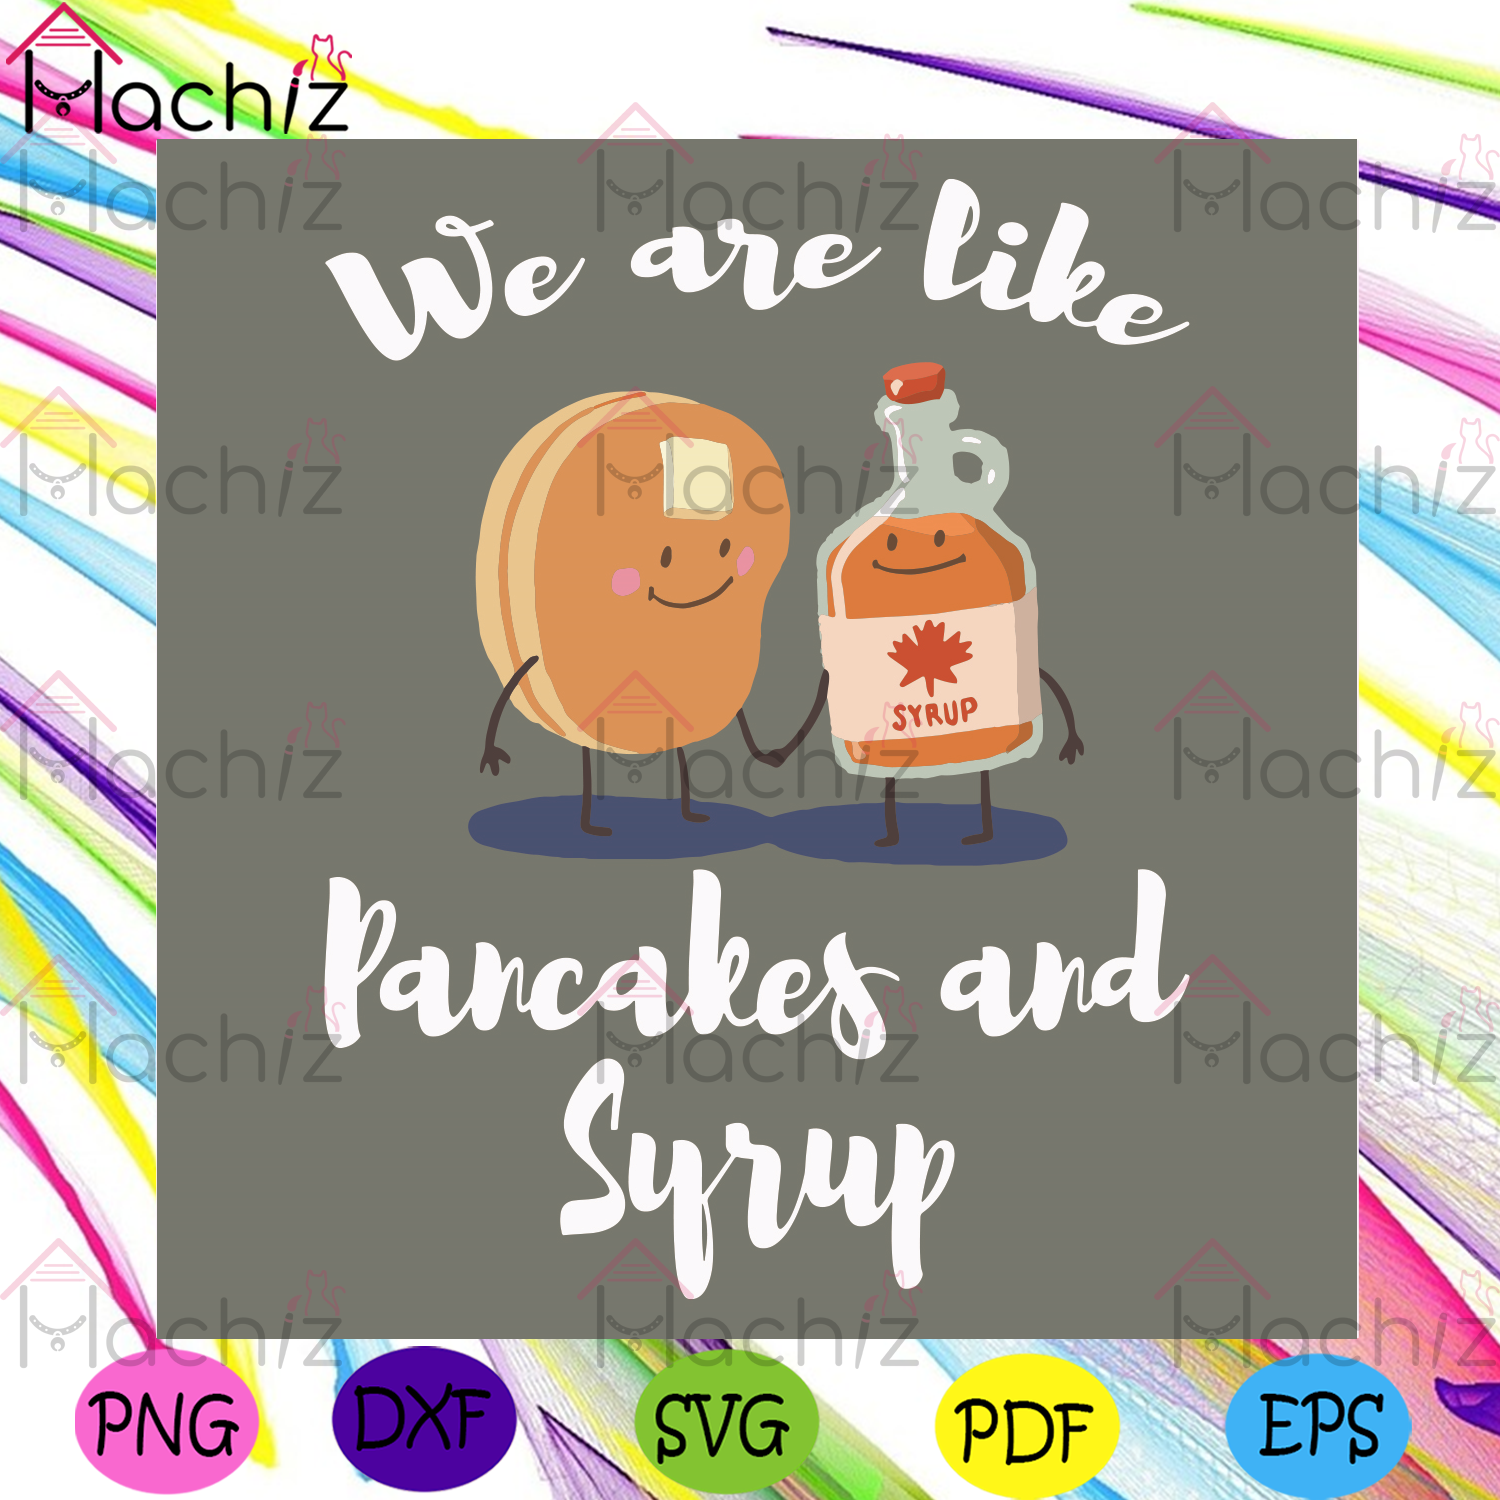 We are like pancakes and syrup svg, valentine svg, pancakes svg, syrup svg, couple svg, pancakes and syrup lovers svg, cute couple svg, valentine day svg, valentine gifts svg, valentine party svg,love gifts svg, love quotes svg